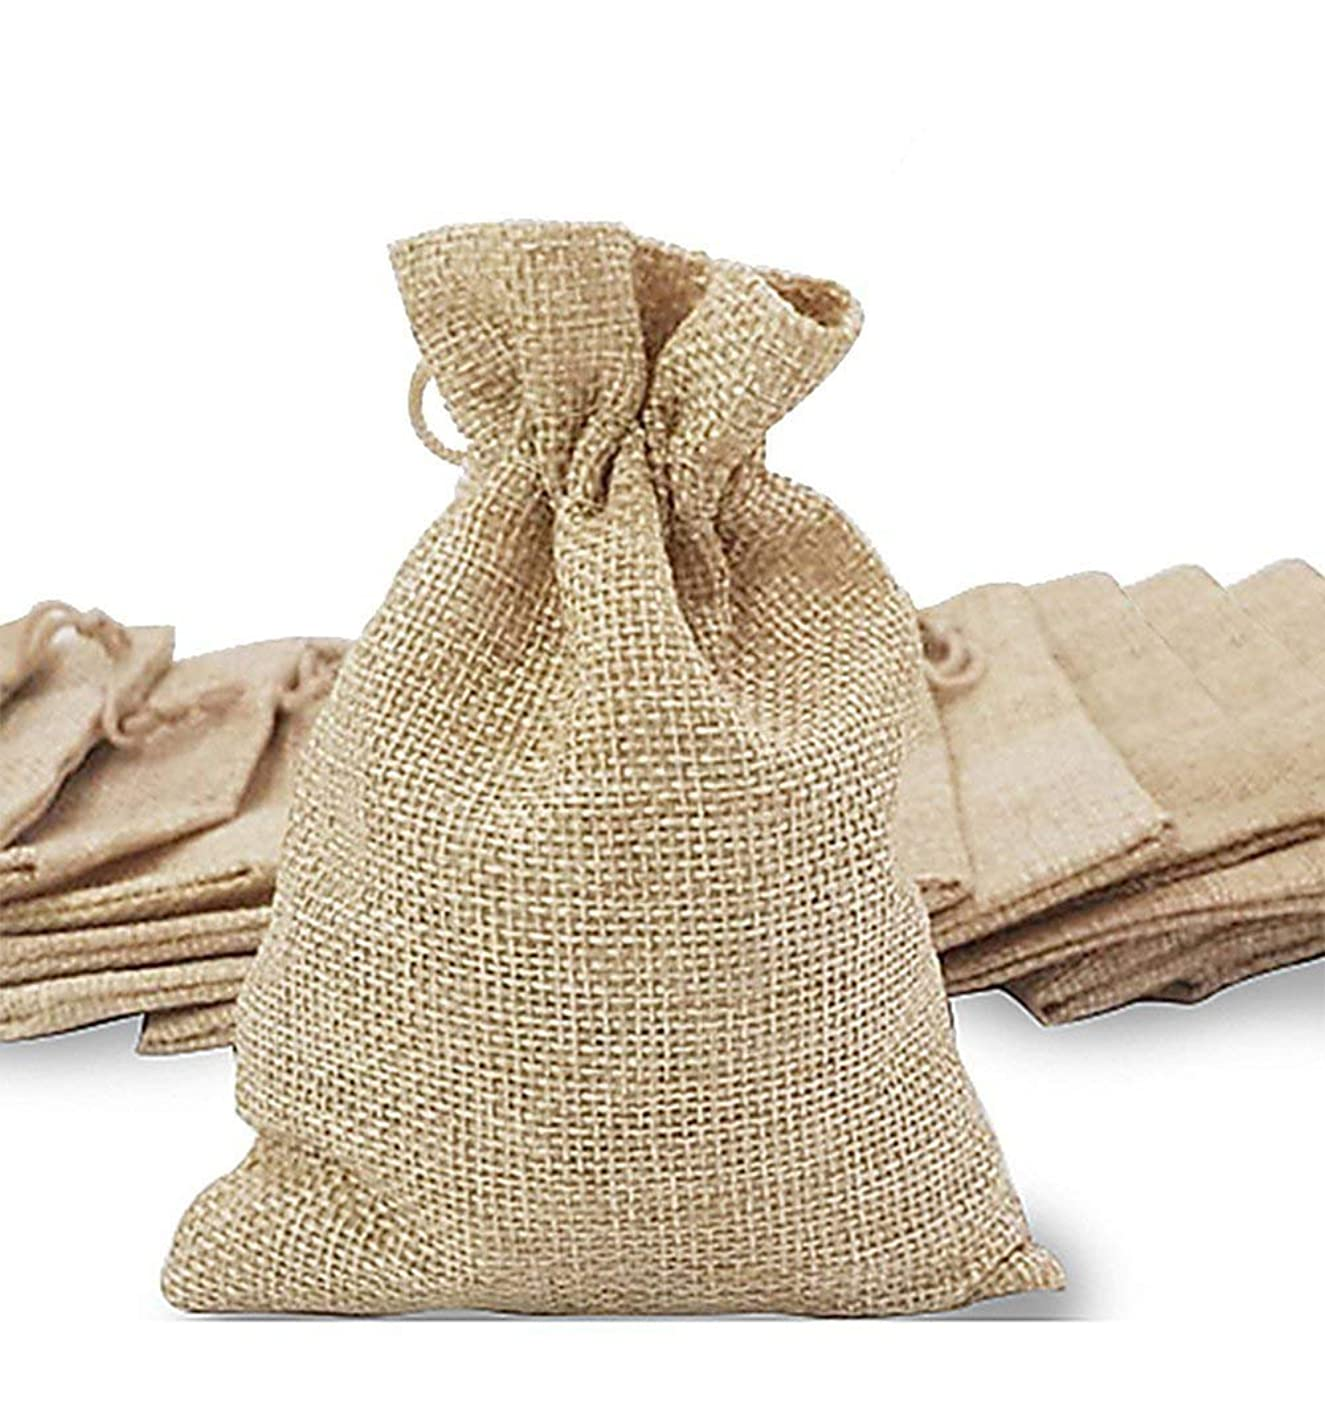 handrong 30Pcs Burlaps Bags with Drawstring, Gift Bag Jute Hessian Packing Storage Linen Burlap Jewelry Pouches Sacks for Wedding Party Shower Birthday Christmas Jewelery DIY Craft, 5.0 x 4.0 Inch